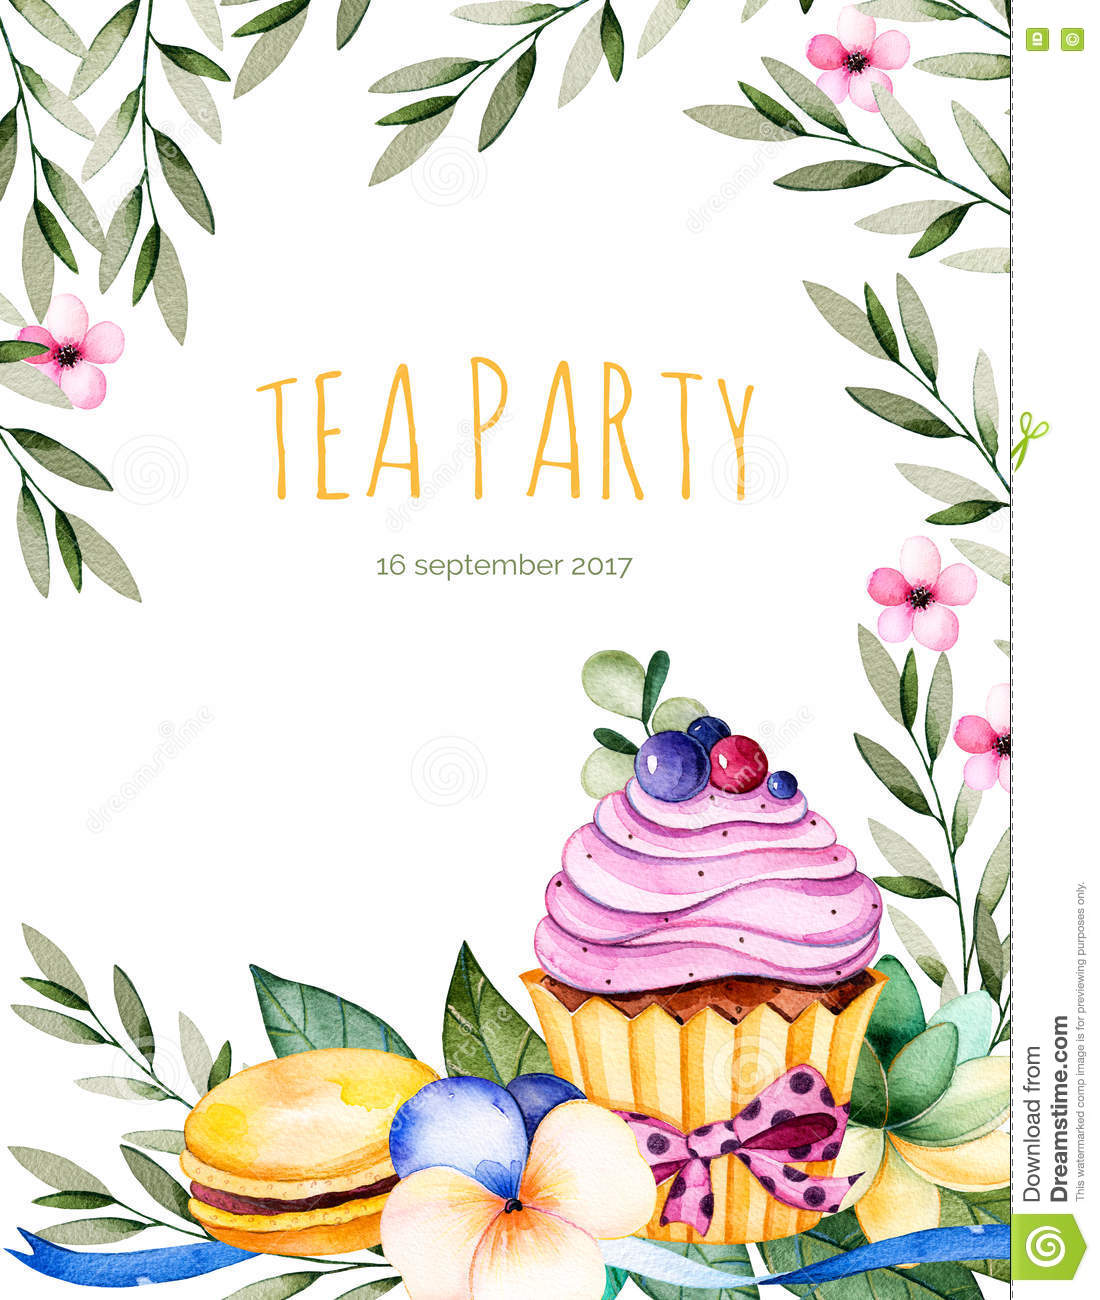 Beautiful Watercolor Invitation With Tasty Cupcakes,succulent.